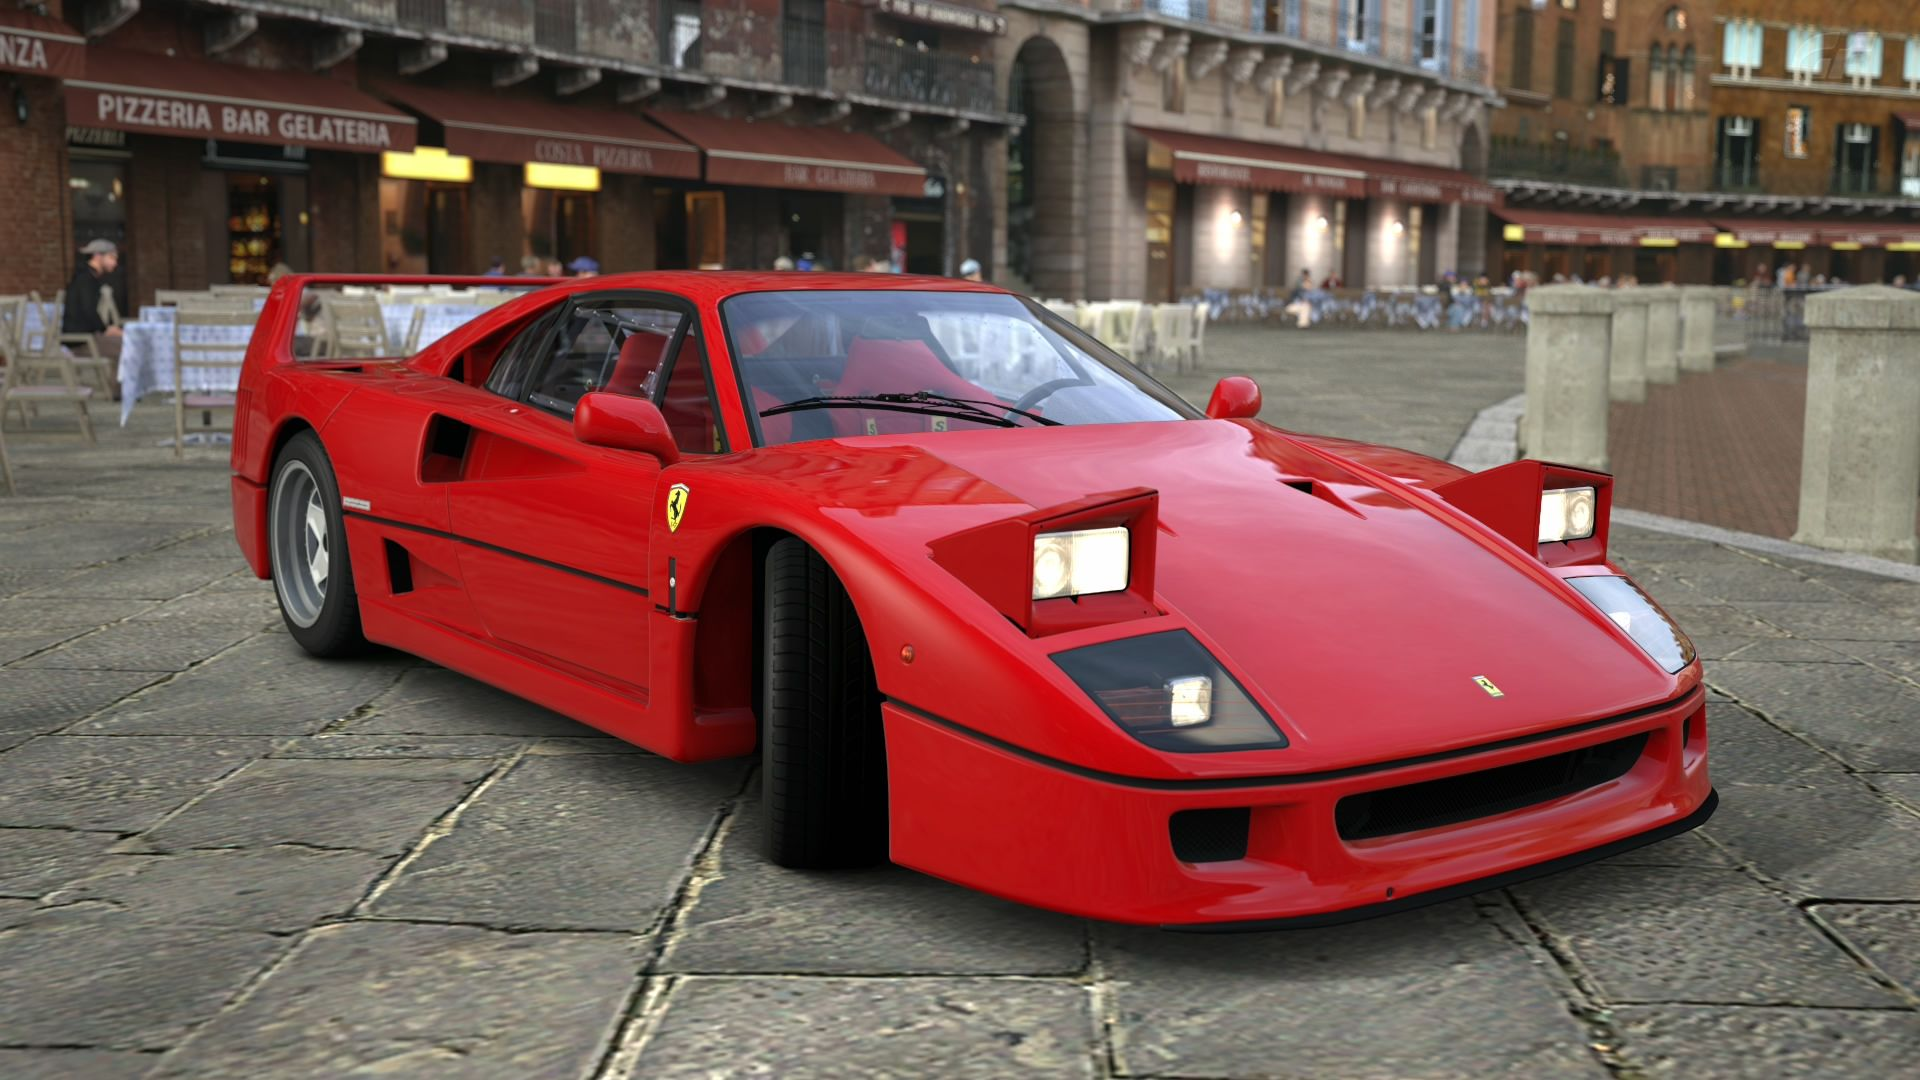 Ferrari f40 ferrari ferrari f40 and cars ferrari f40 vanachro Image collections